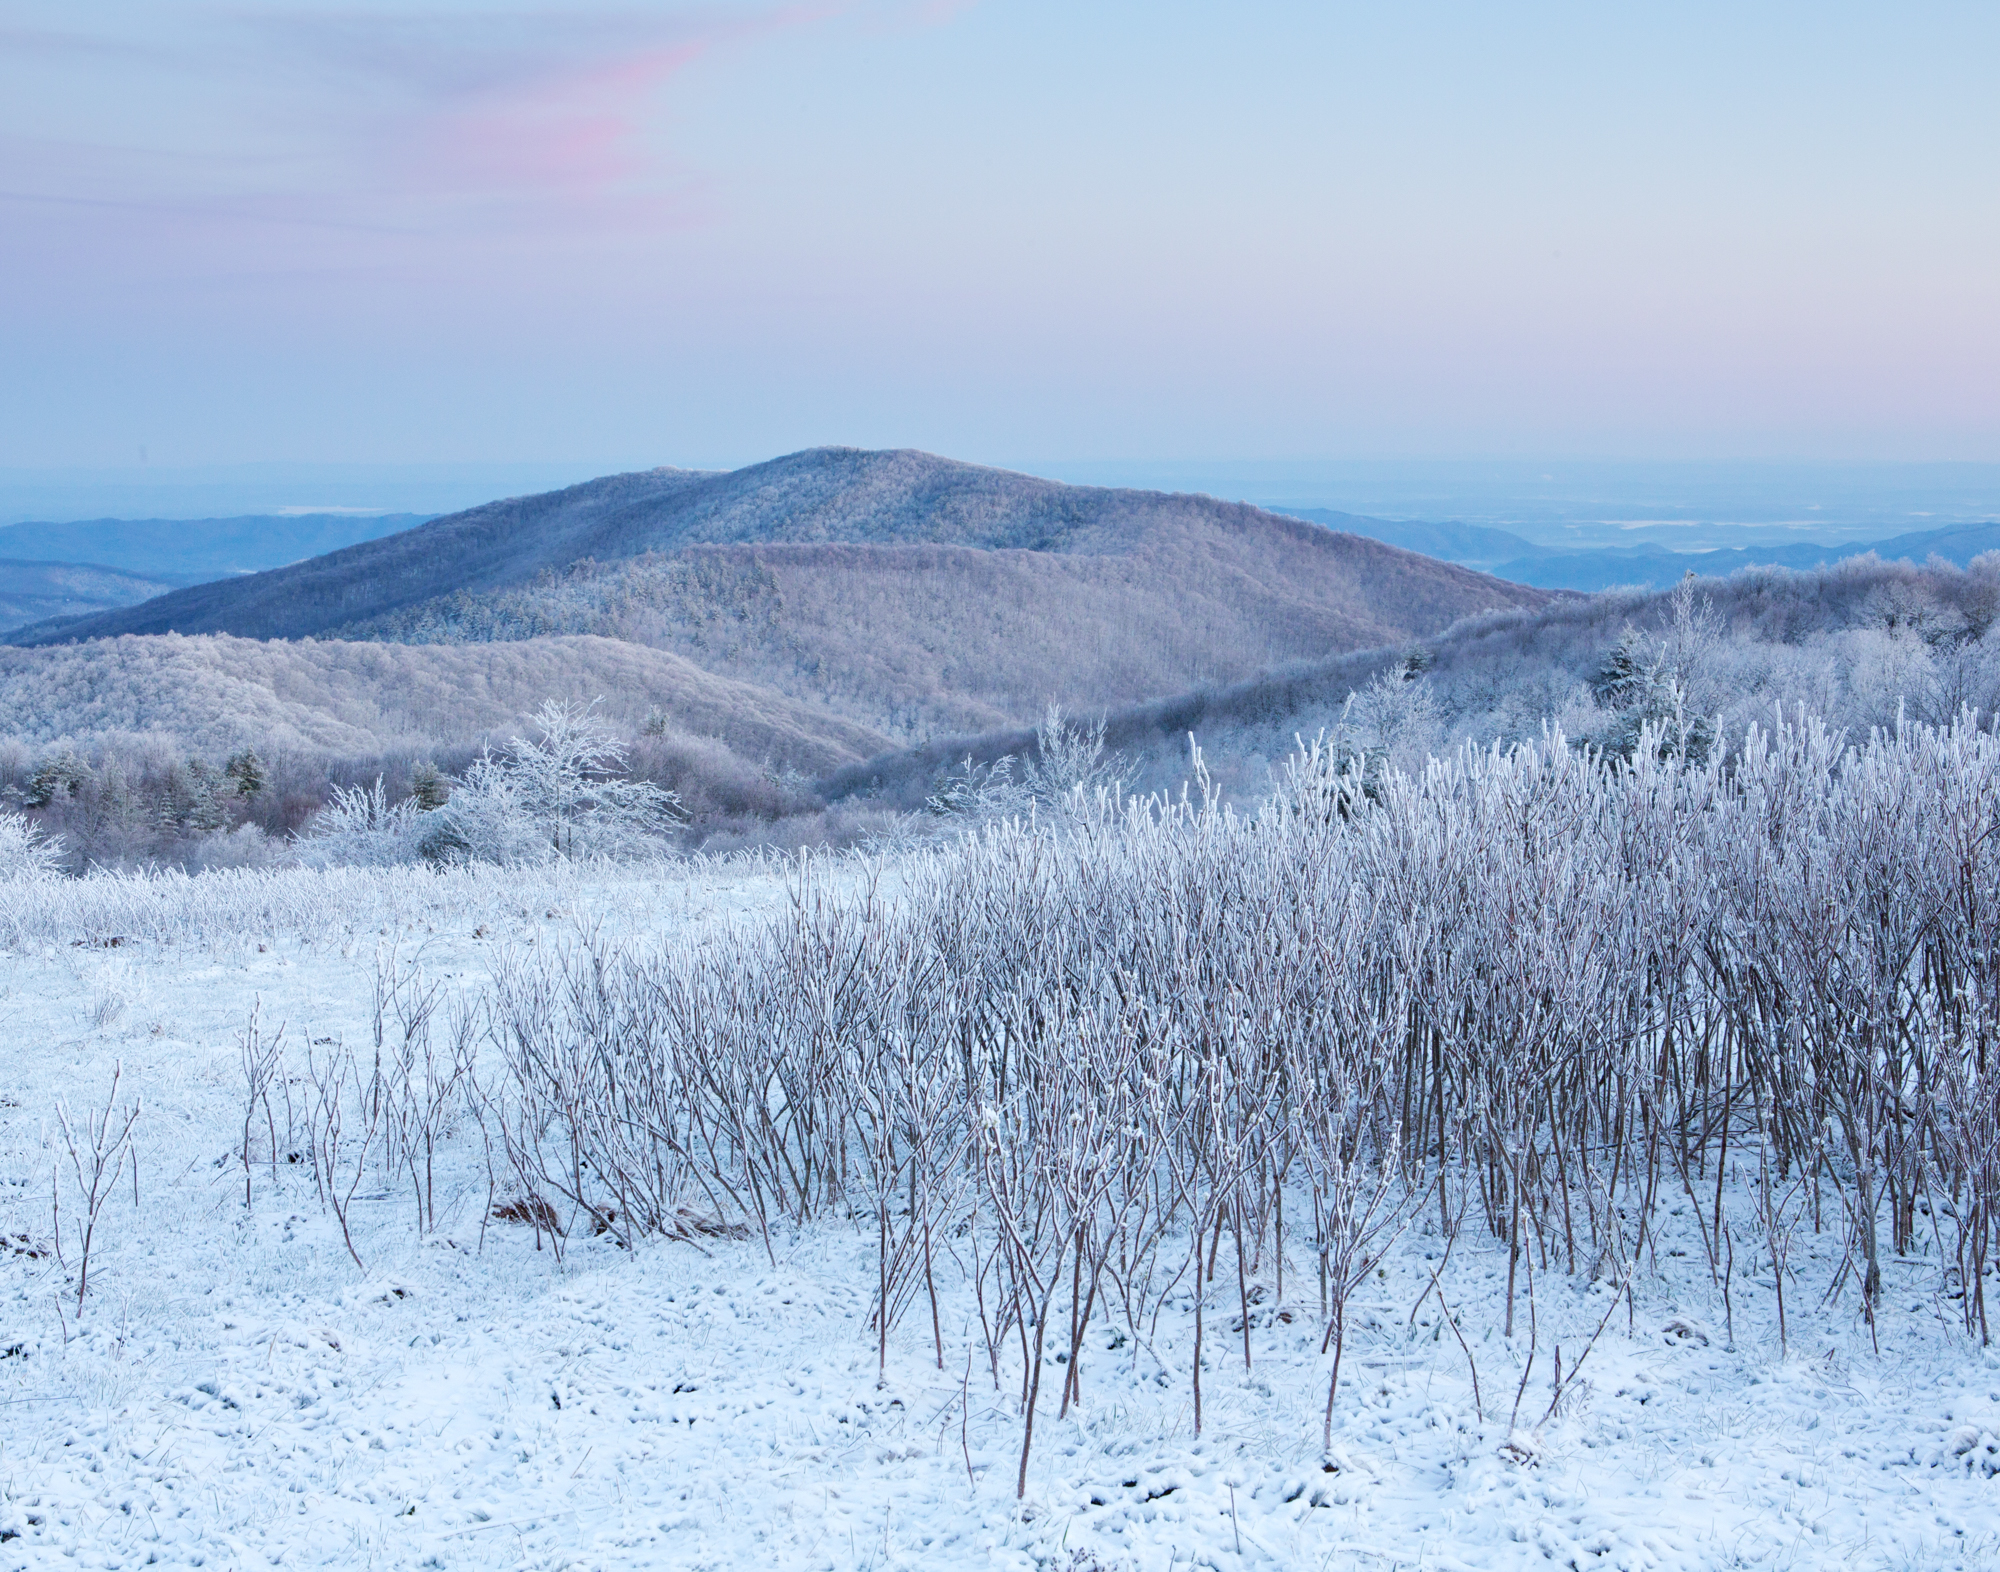 3. Max Patch, North Carolina